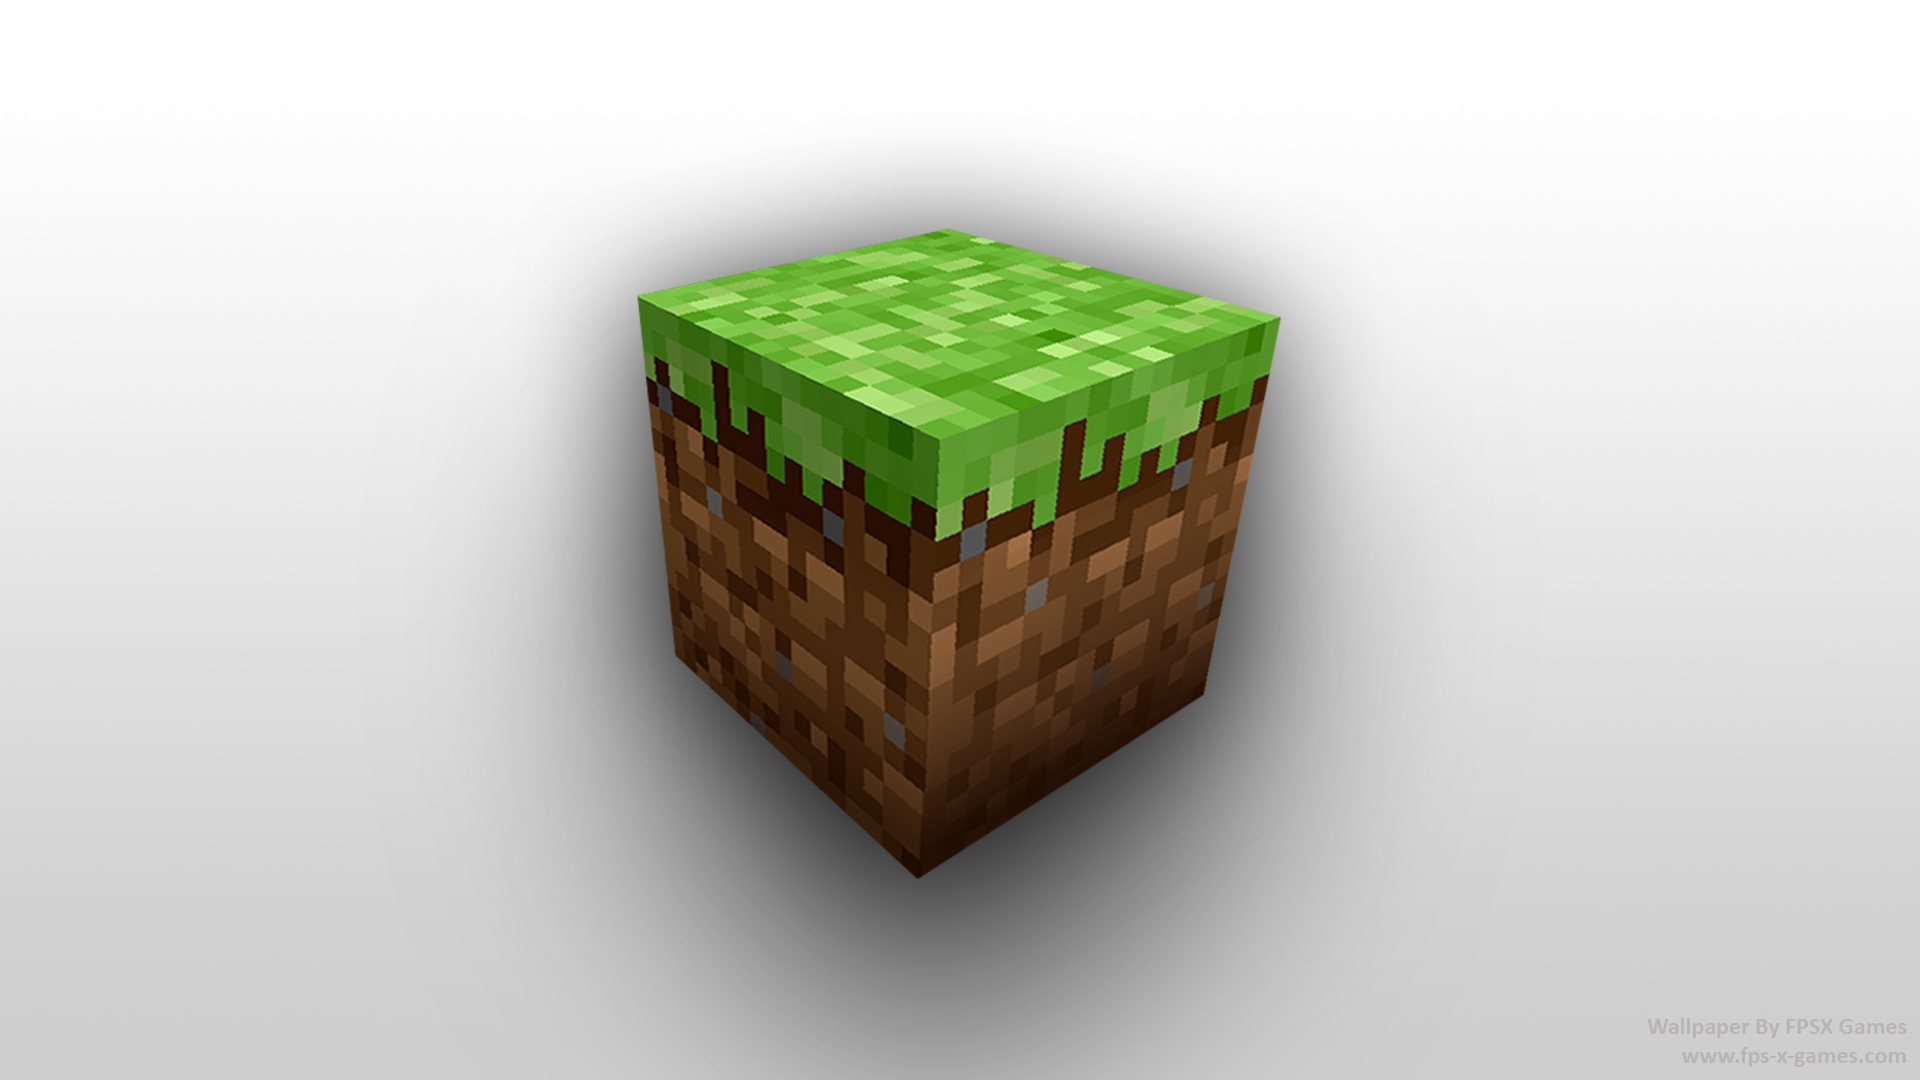 Minecraft dirt block, desktop wallpaper by fpsxgames